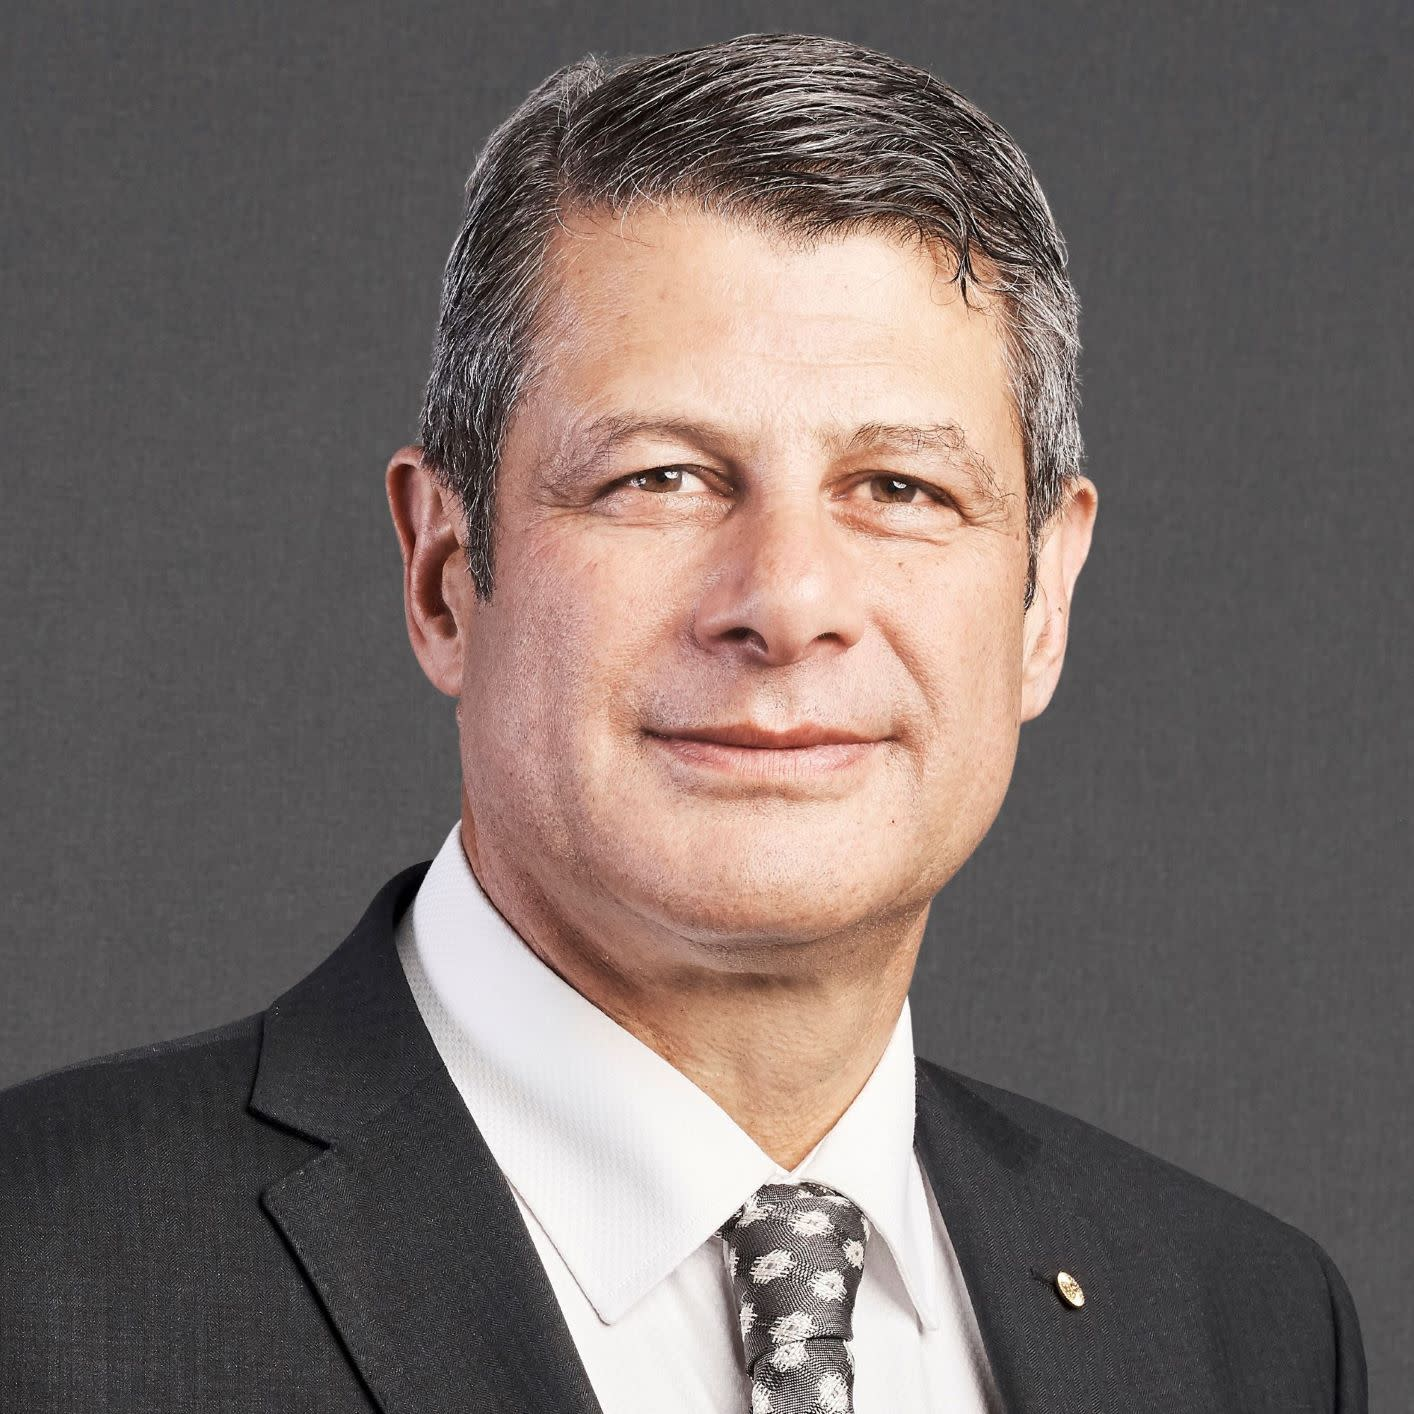 The Honourable Steve Bracks